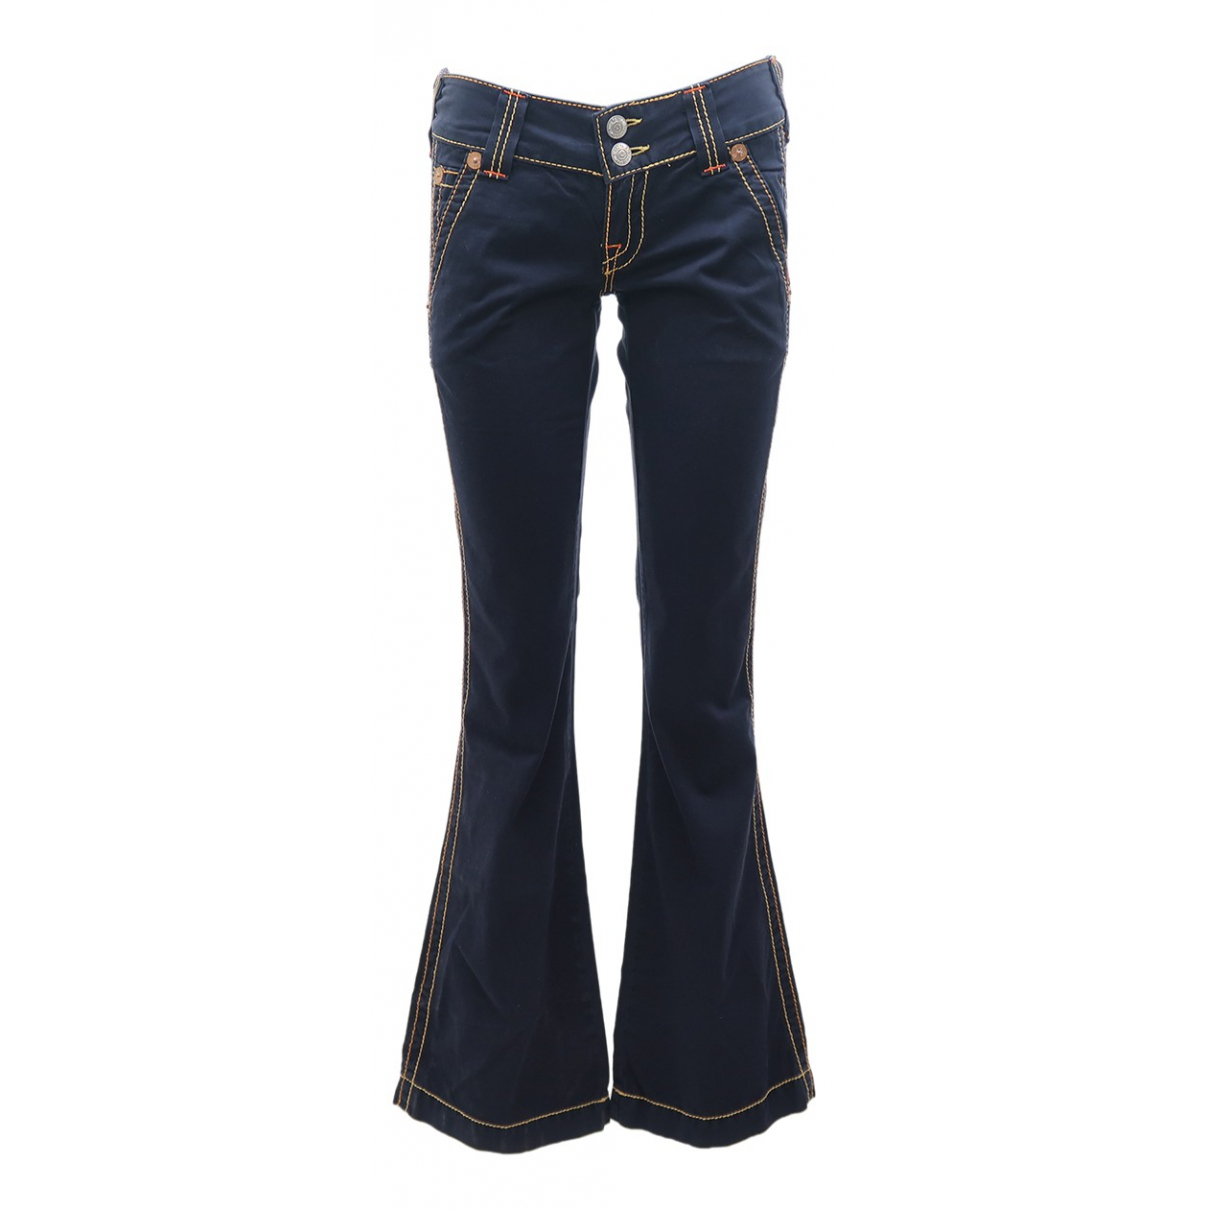 True Religion \N Navy Cotton Jeans for Women 24 US